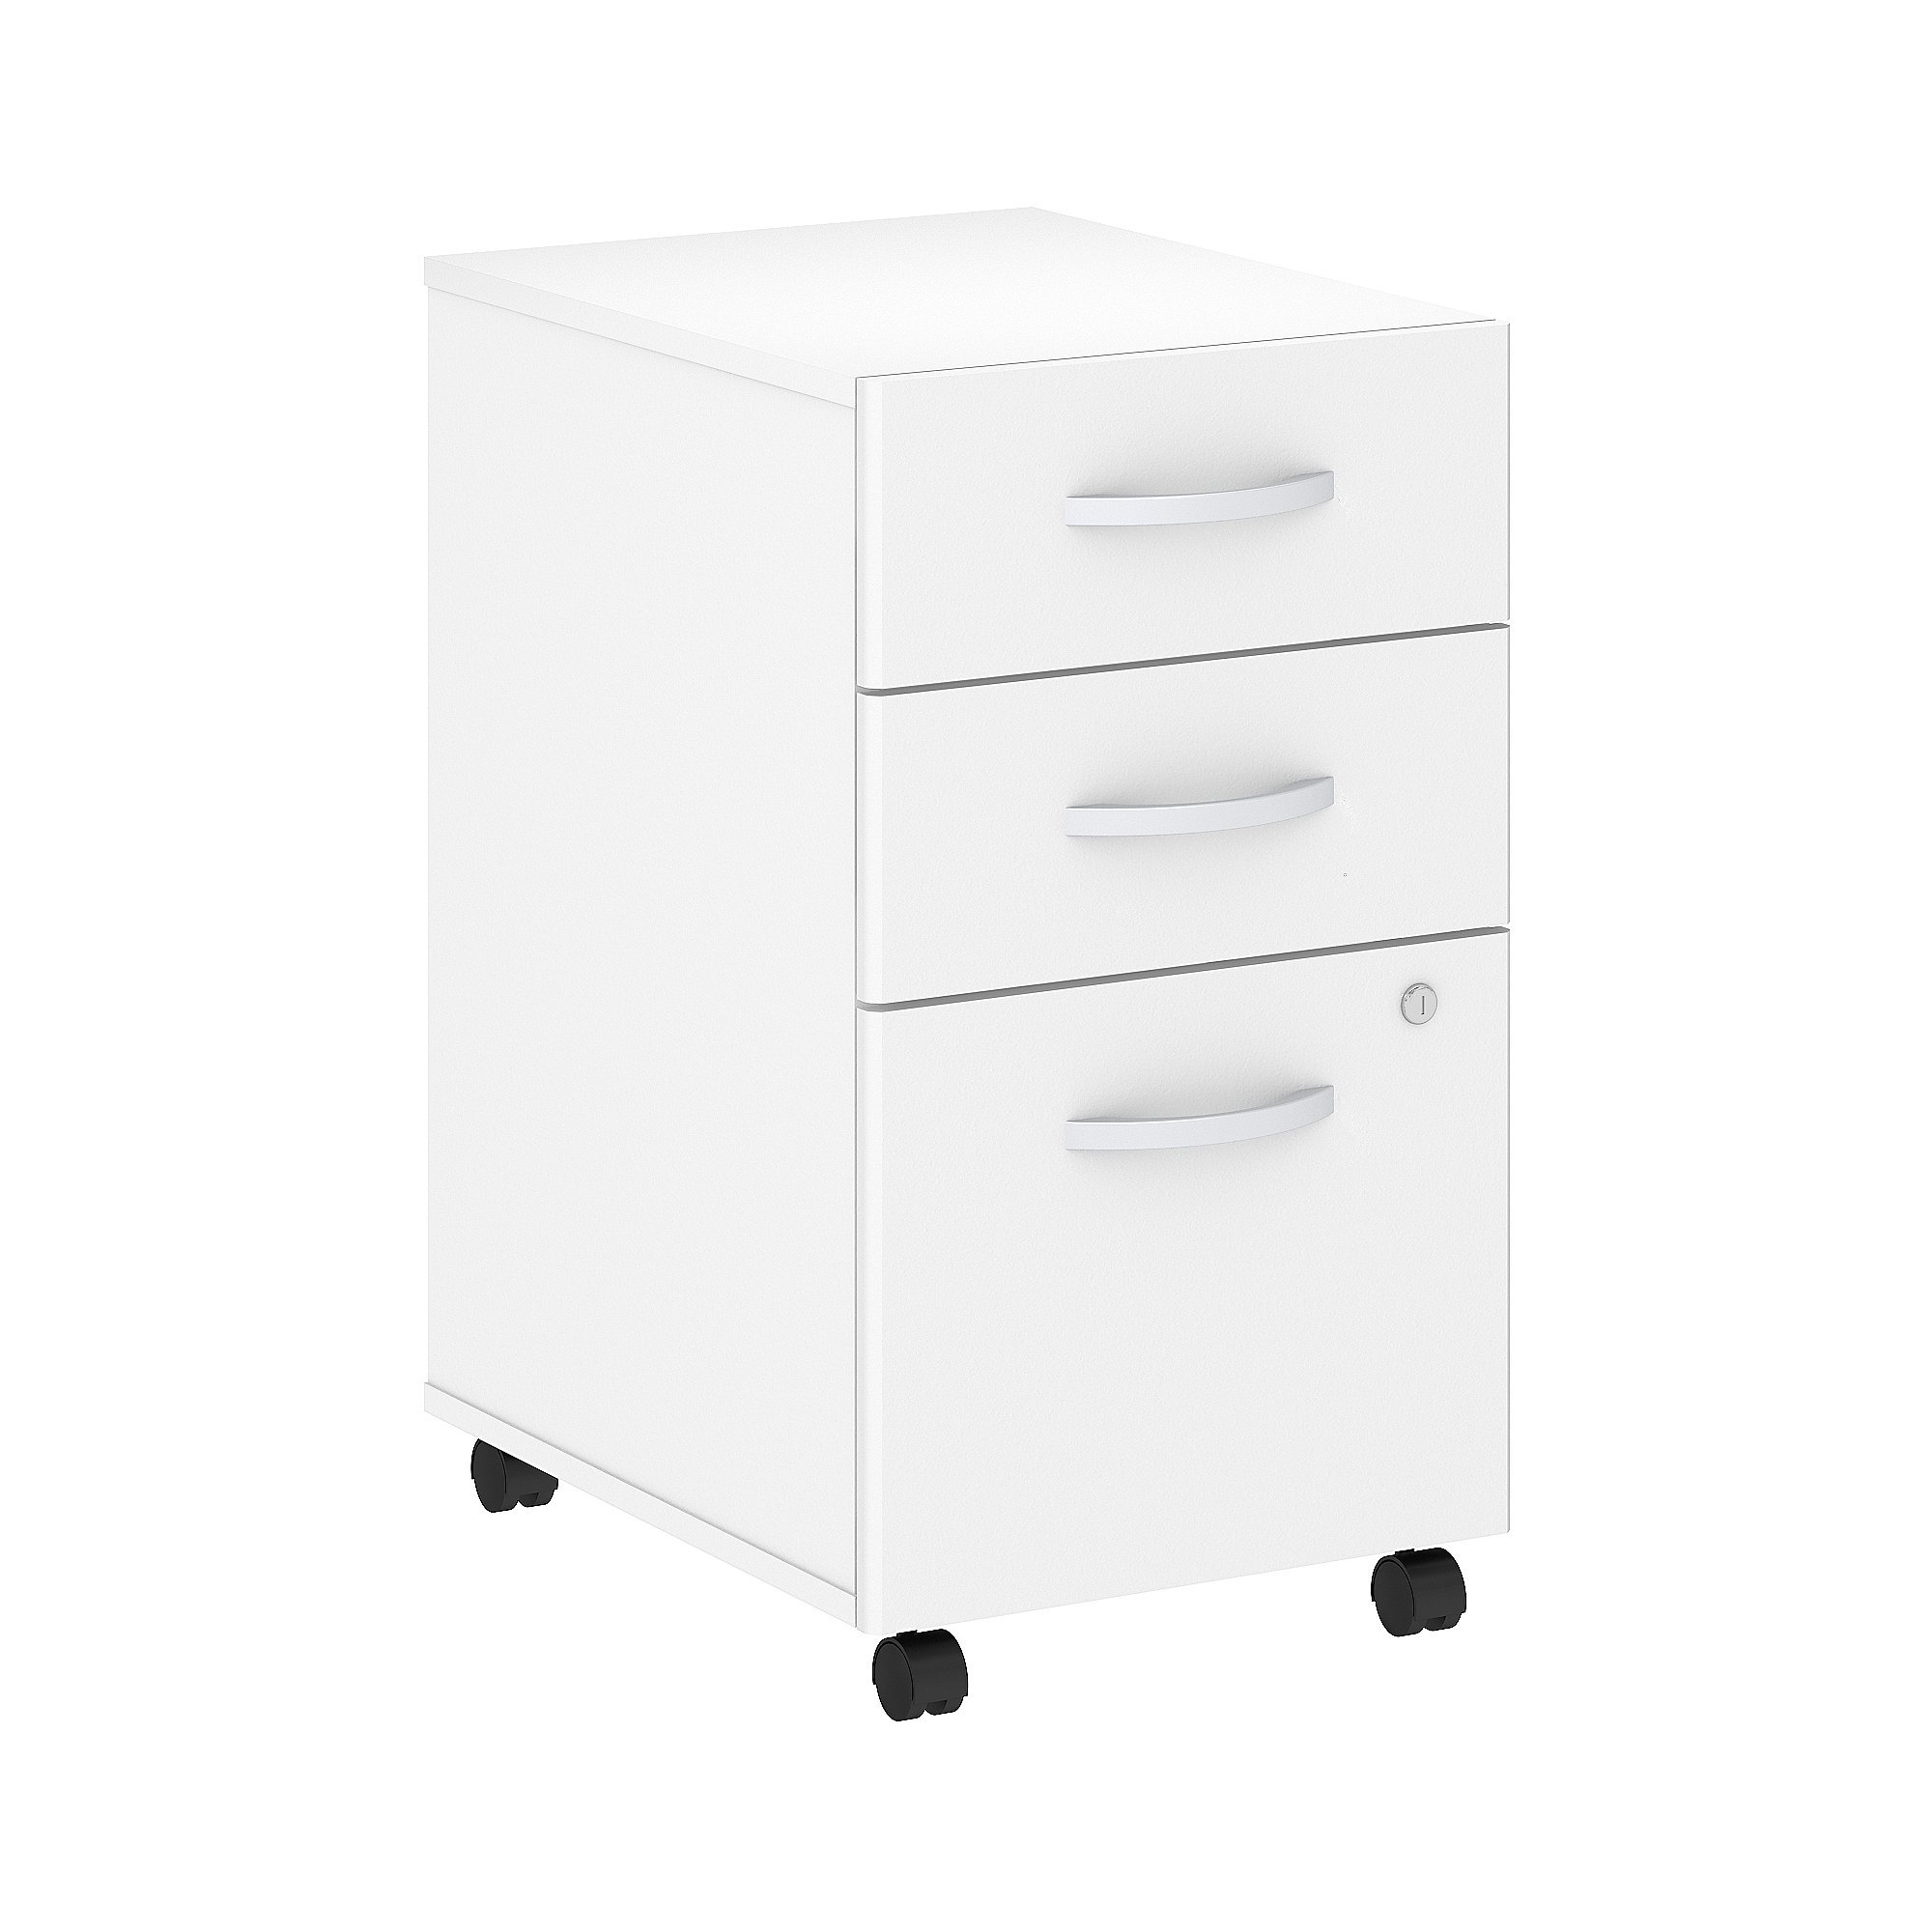 Bush Business Furniture Studio C 3 Drawer Mobile File Cabinet in White